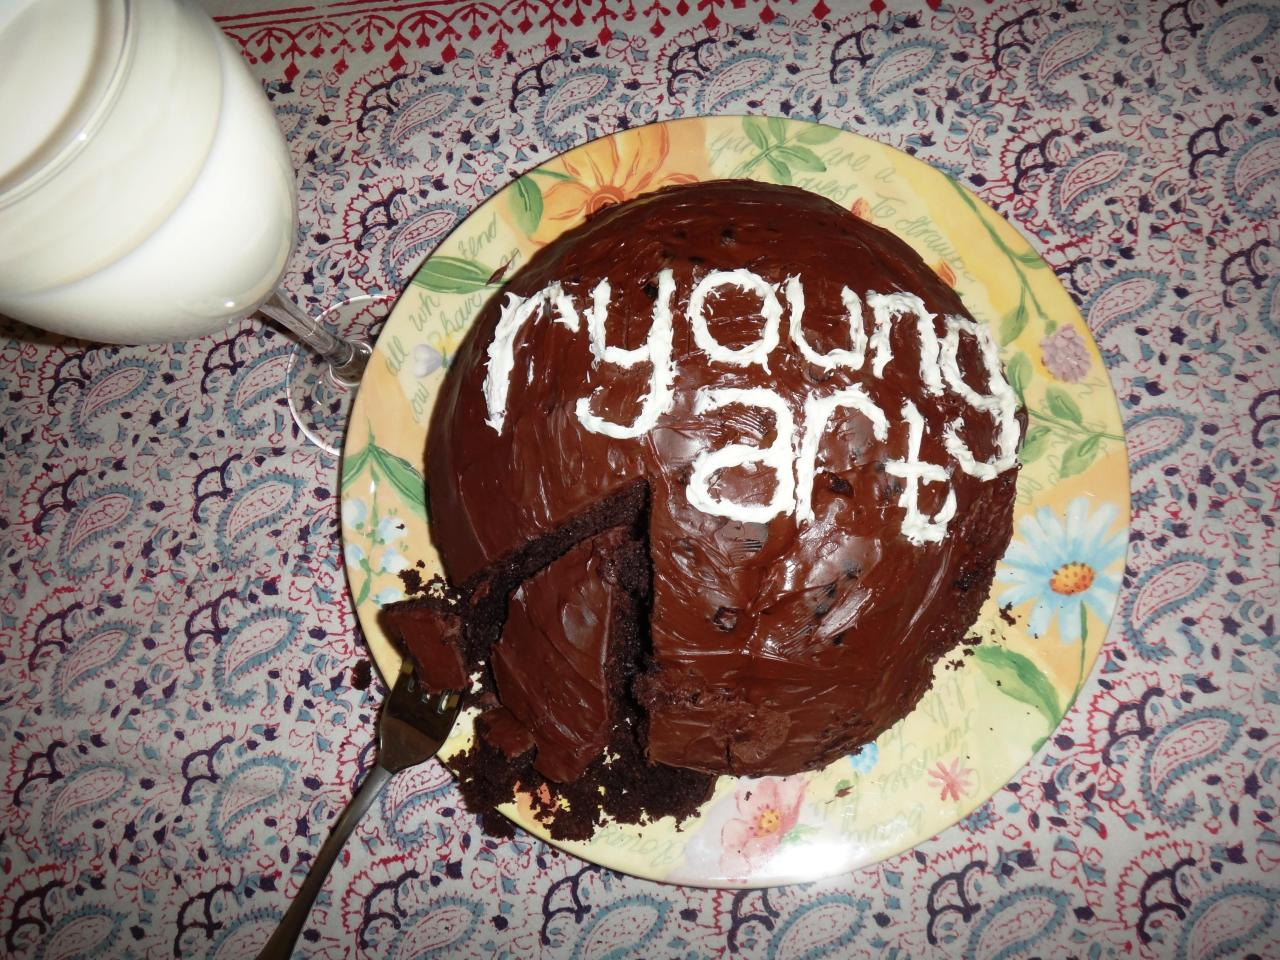 r-young-art-chocolate-cake-promotional-advertising